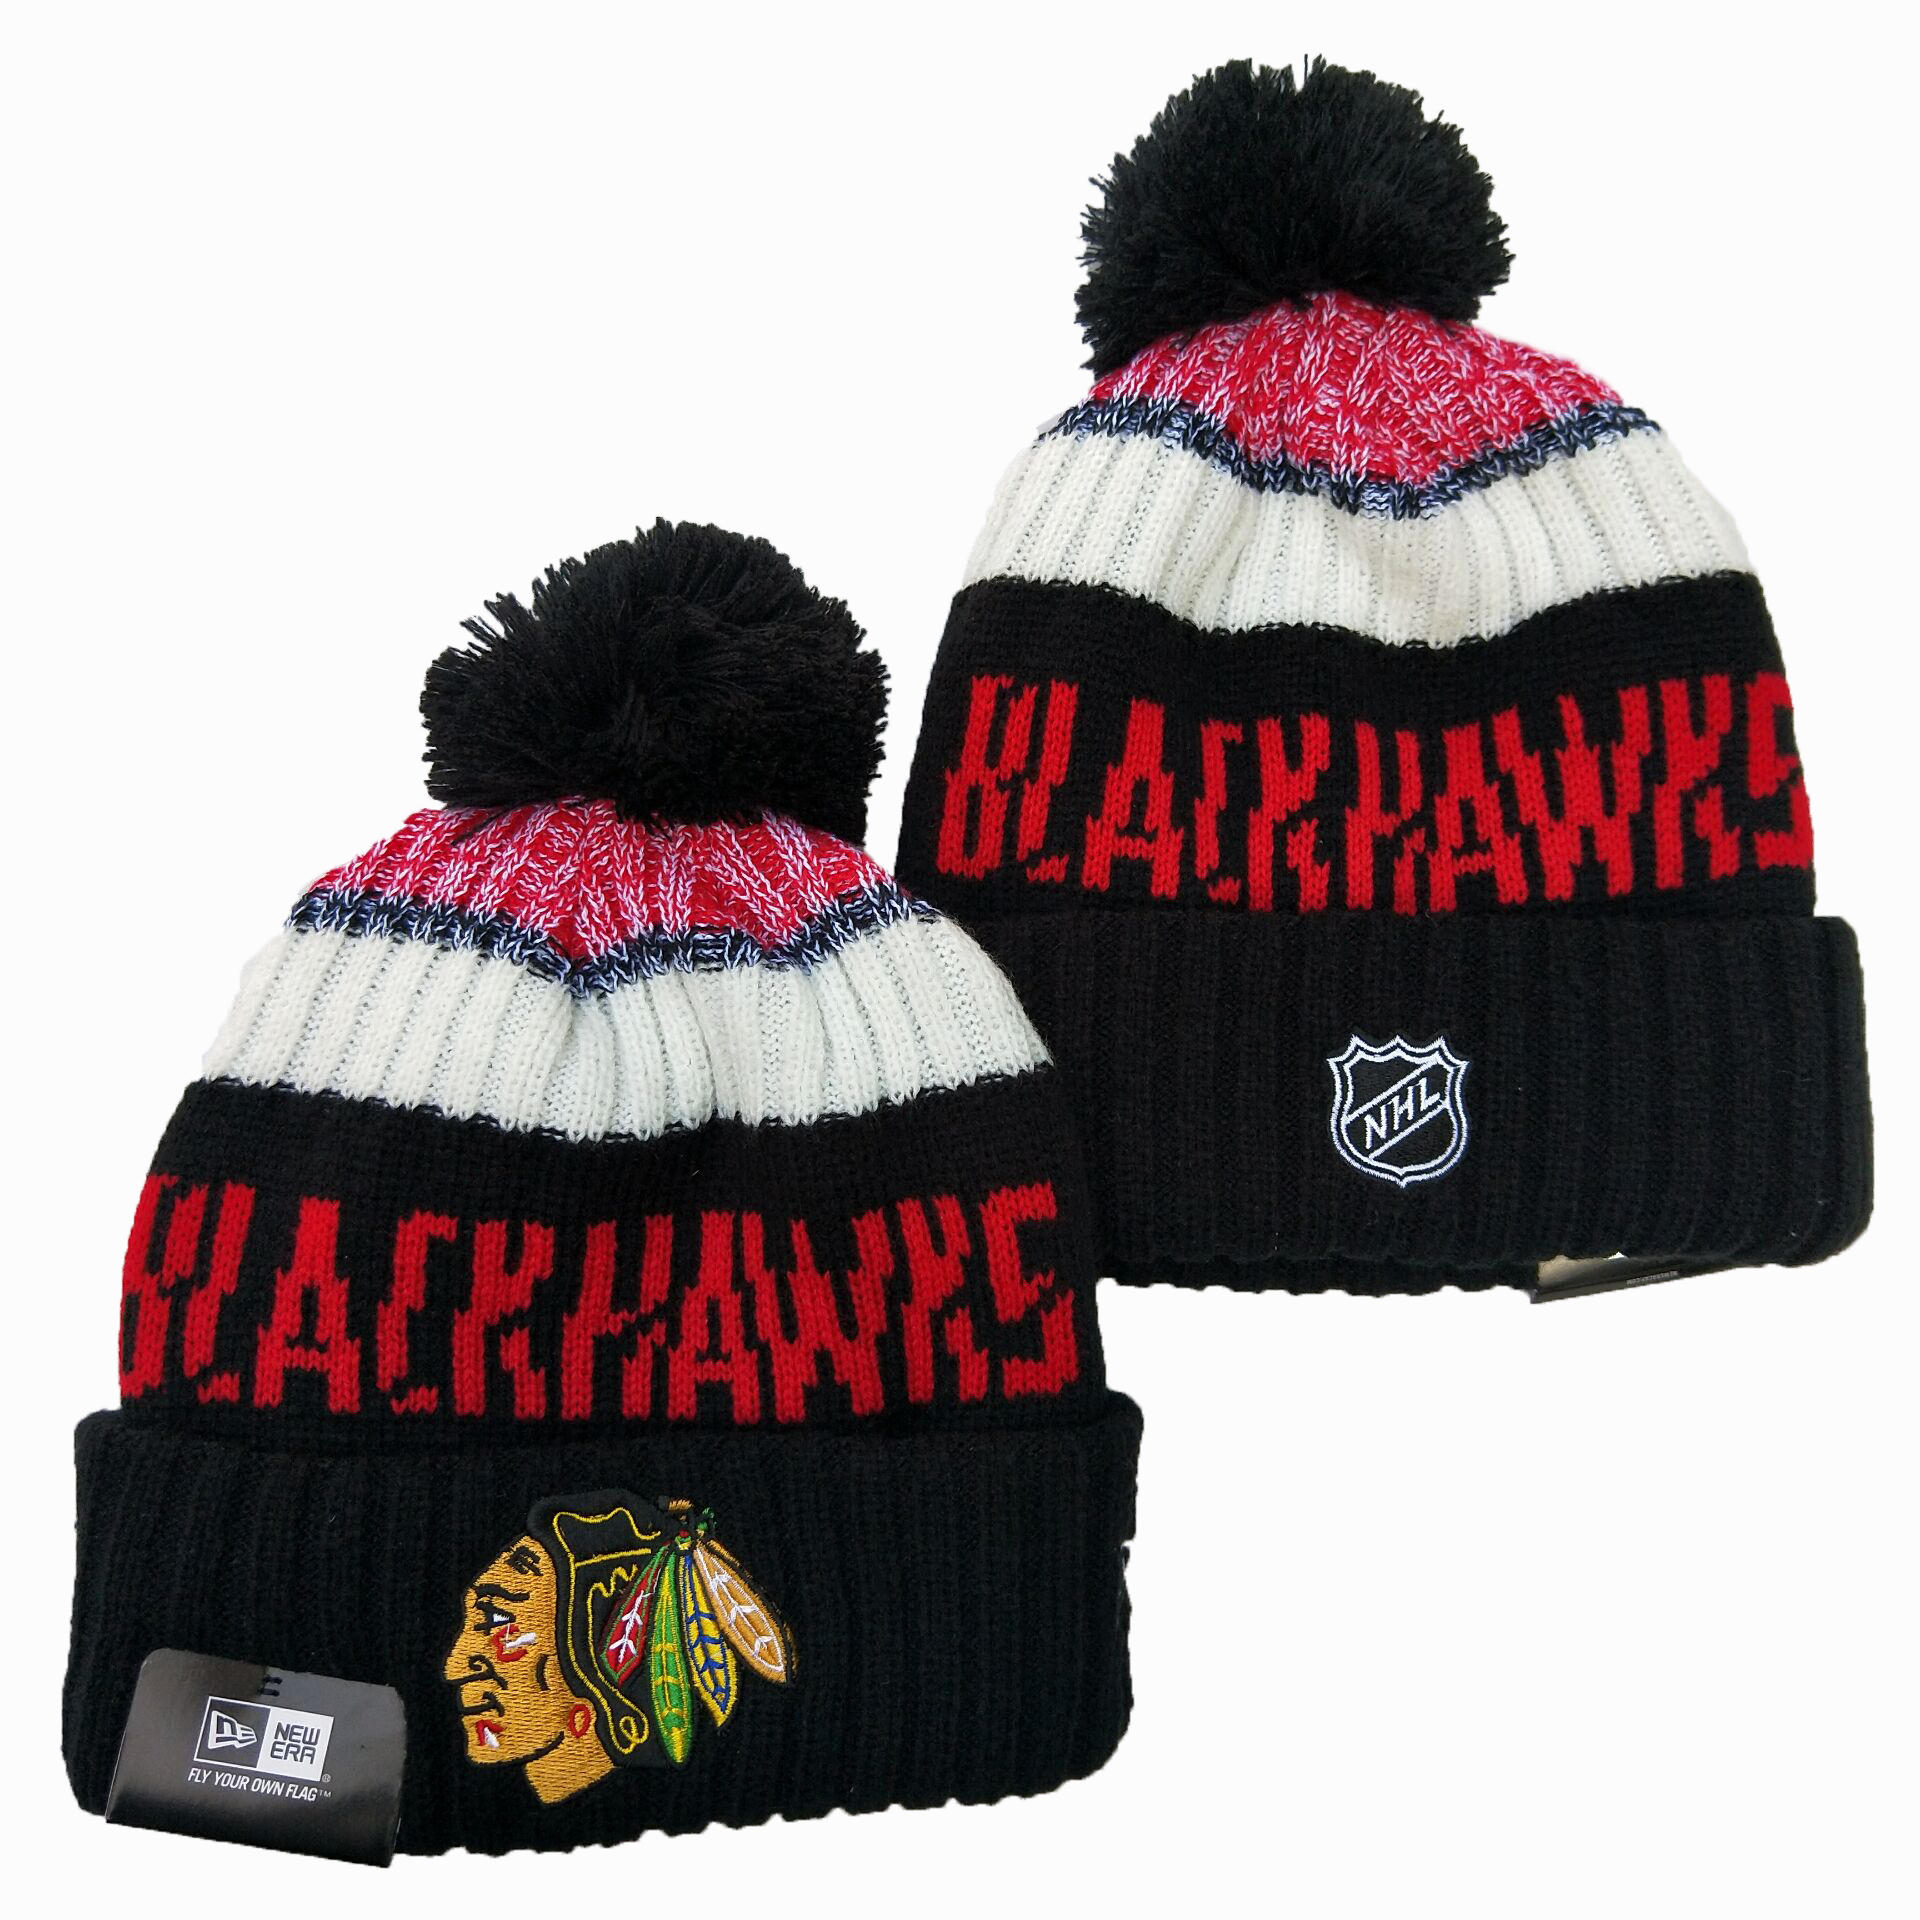 Blackhawks Team Logo Black Wordmark Cuffed Pom Knit Hat YD